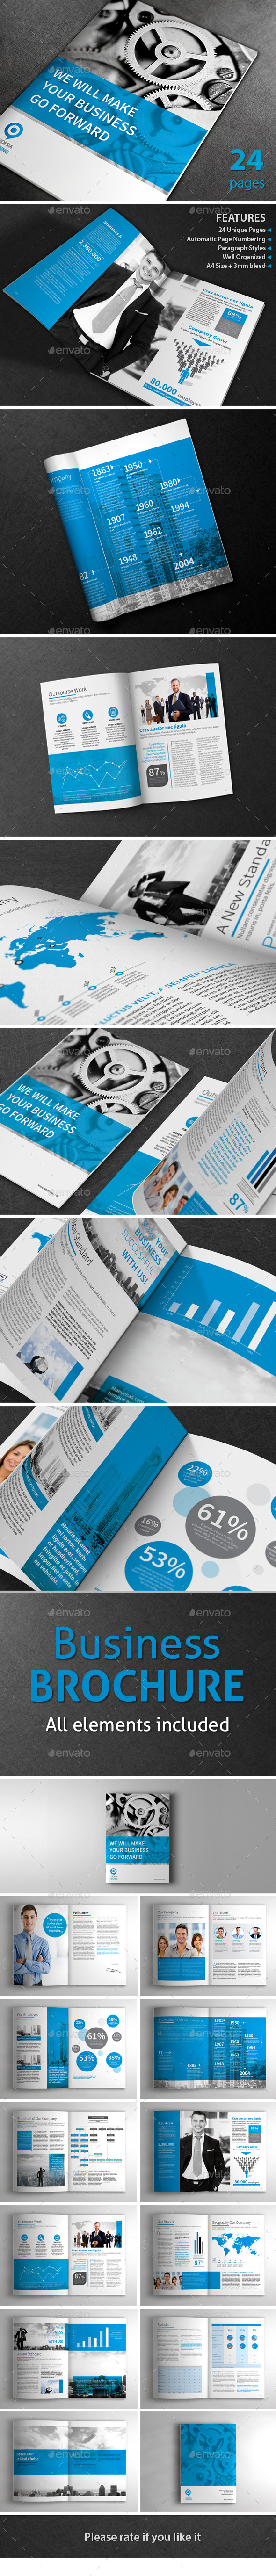 Business Template Brochure - Brochures Print Templates